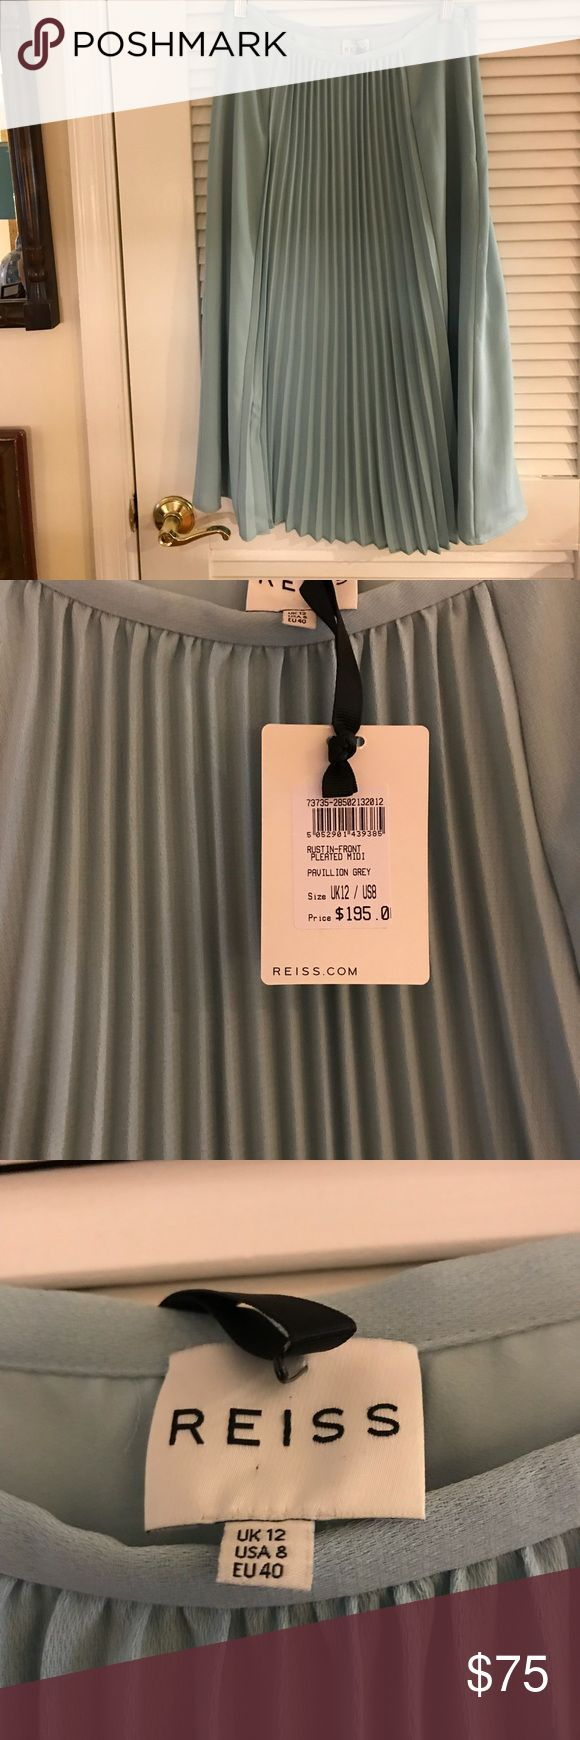 Reiss skirt — sz 8; NWT beautiful seafoam green/grey pleated midi Reiss skirt; brand new with tags Reiss Skirts